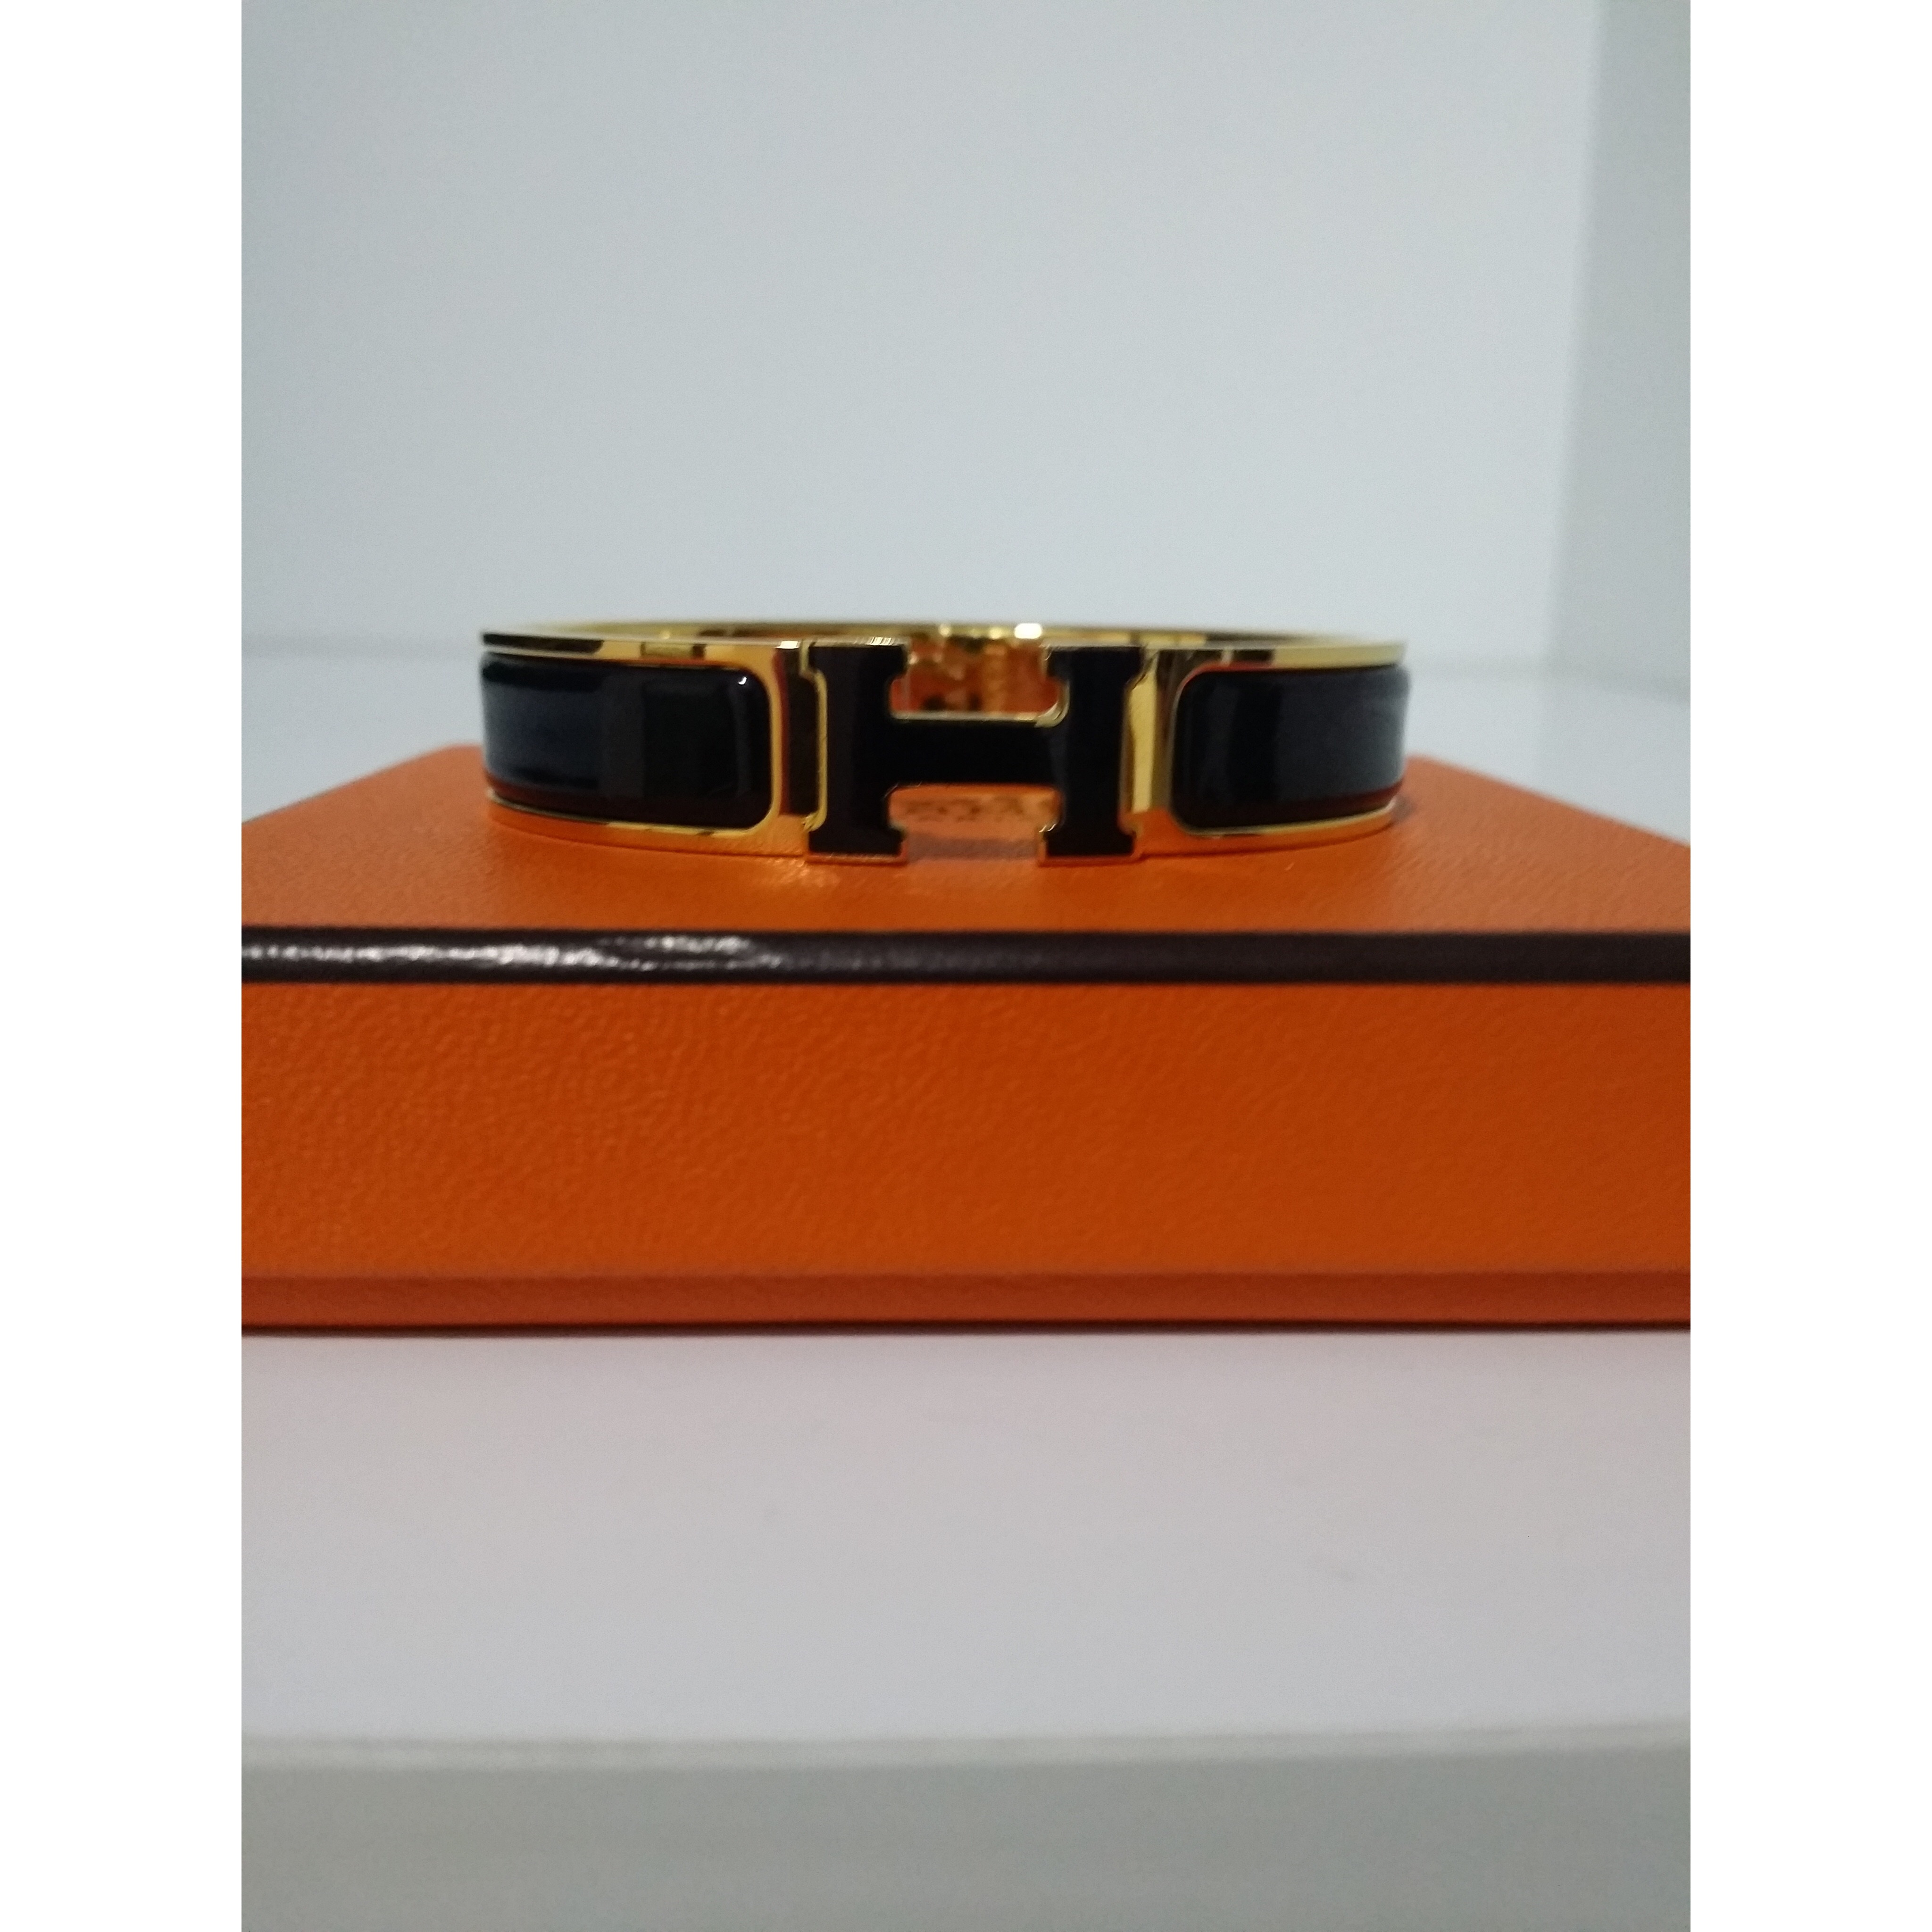 3ec38f68164b 965a2 bc92a  france hermes clic h black enamel ghw size pm includes box  dustbag. condition fine scratches